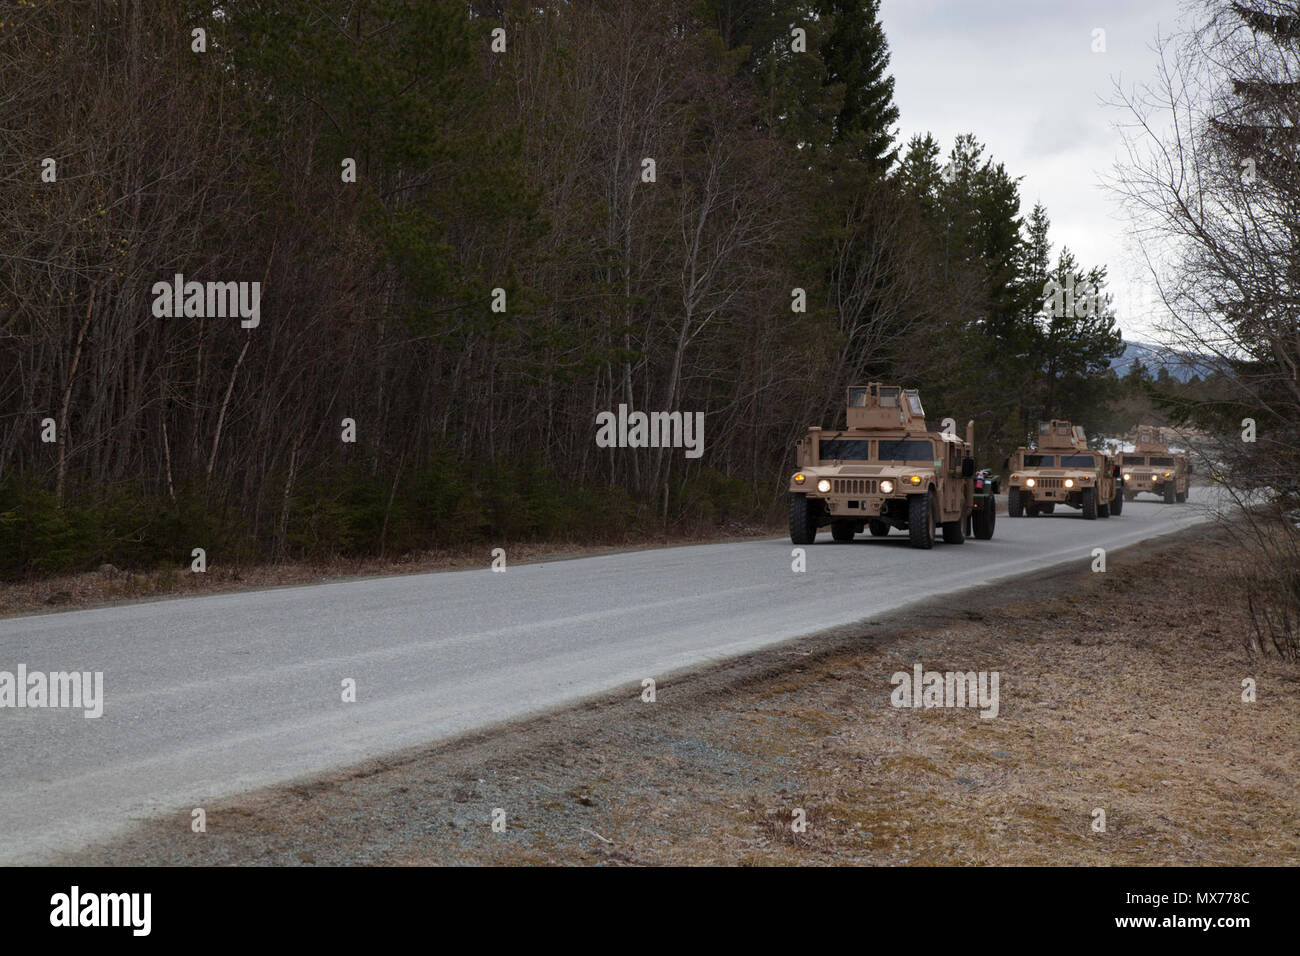 U.S. Marines with 2nd Transportation Support Battalion, Combat Logistics Regiment 2, 2nd Marine Logistics Group move a convoy of Humvees as part of Strategic Mobility Exercise 17 (STRATMOBEX) in Frigaard, Norway, May 3, 2017. STRATMOBEX was conducted to analyze the responsiveness of the force for future contingency operations involving the Marine Corps Prepositioning Program in Norway (MCPP-N).  MCPP-N creates strategic options for the defense of NATO allies and partners by providing regional support. Stock Photo